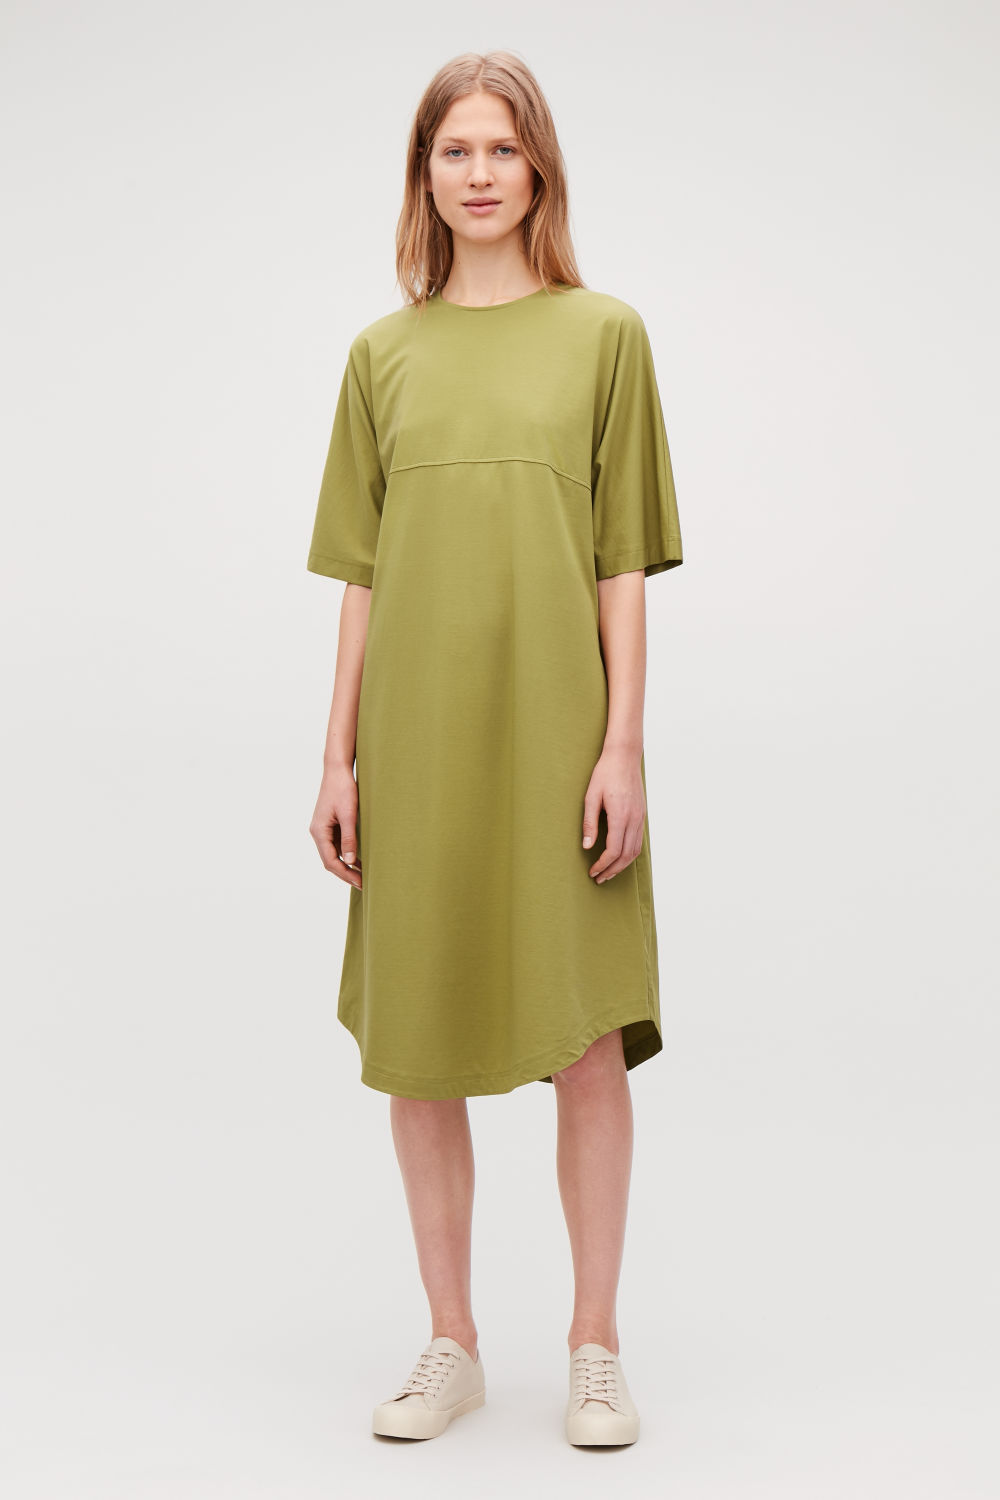 WOVEN-PANELLED A-LINE JERSEY DRESS